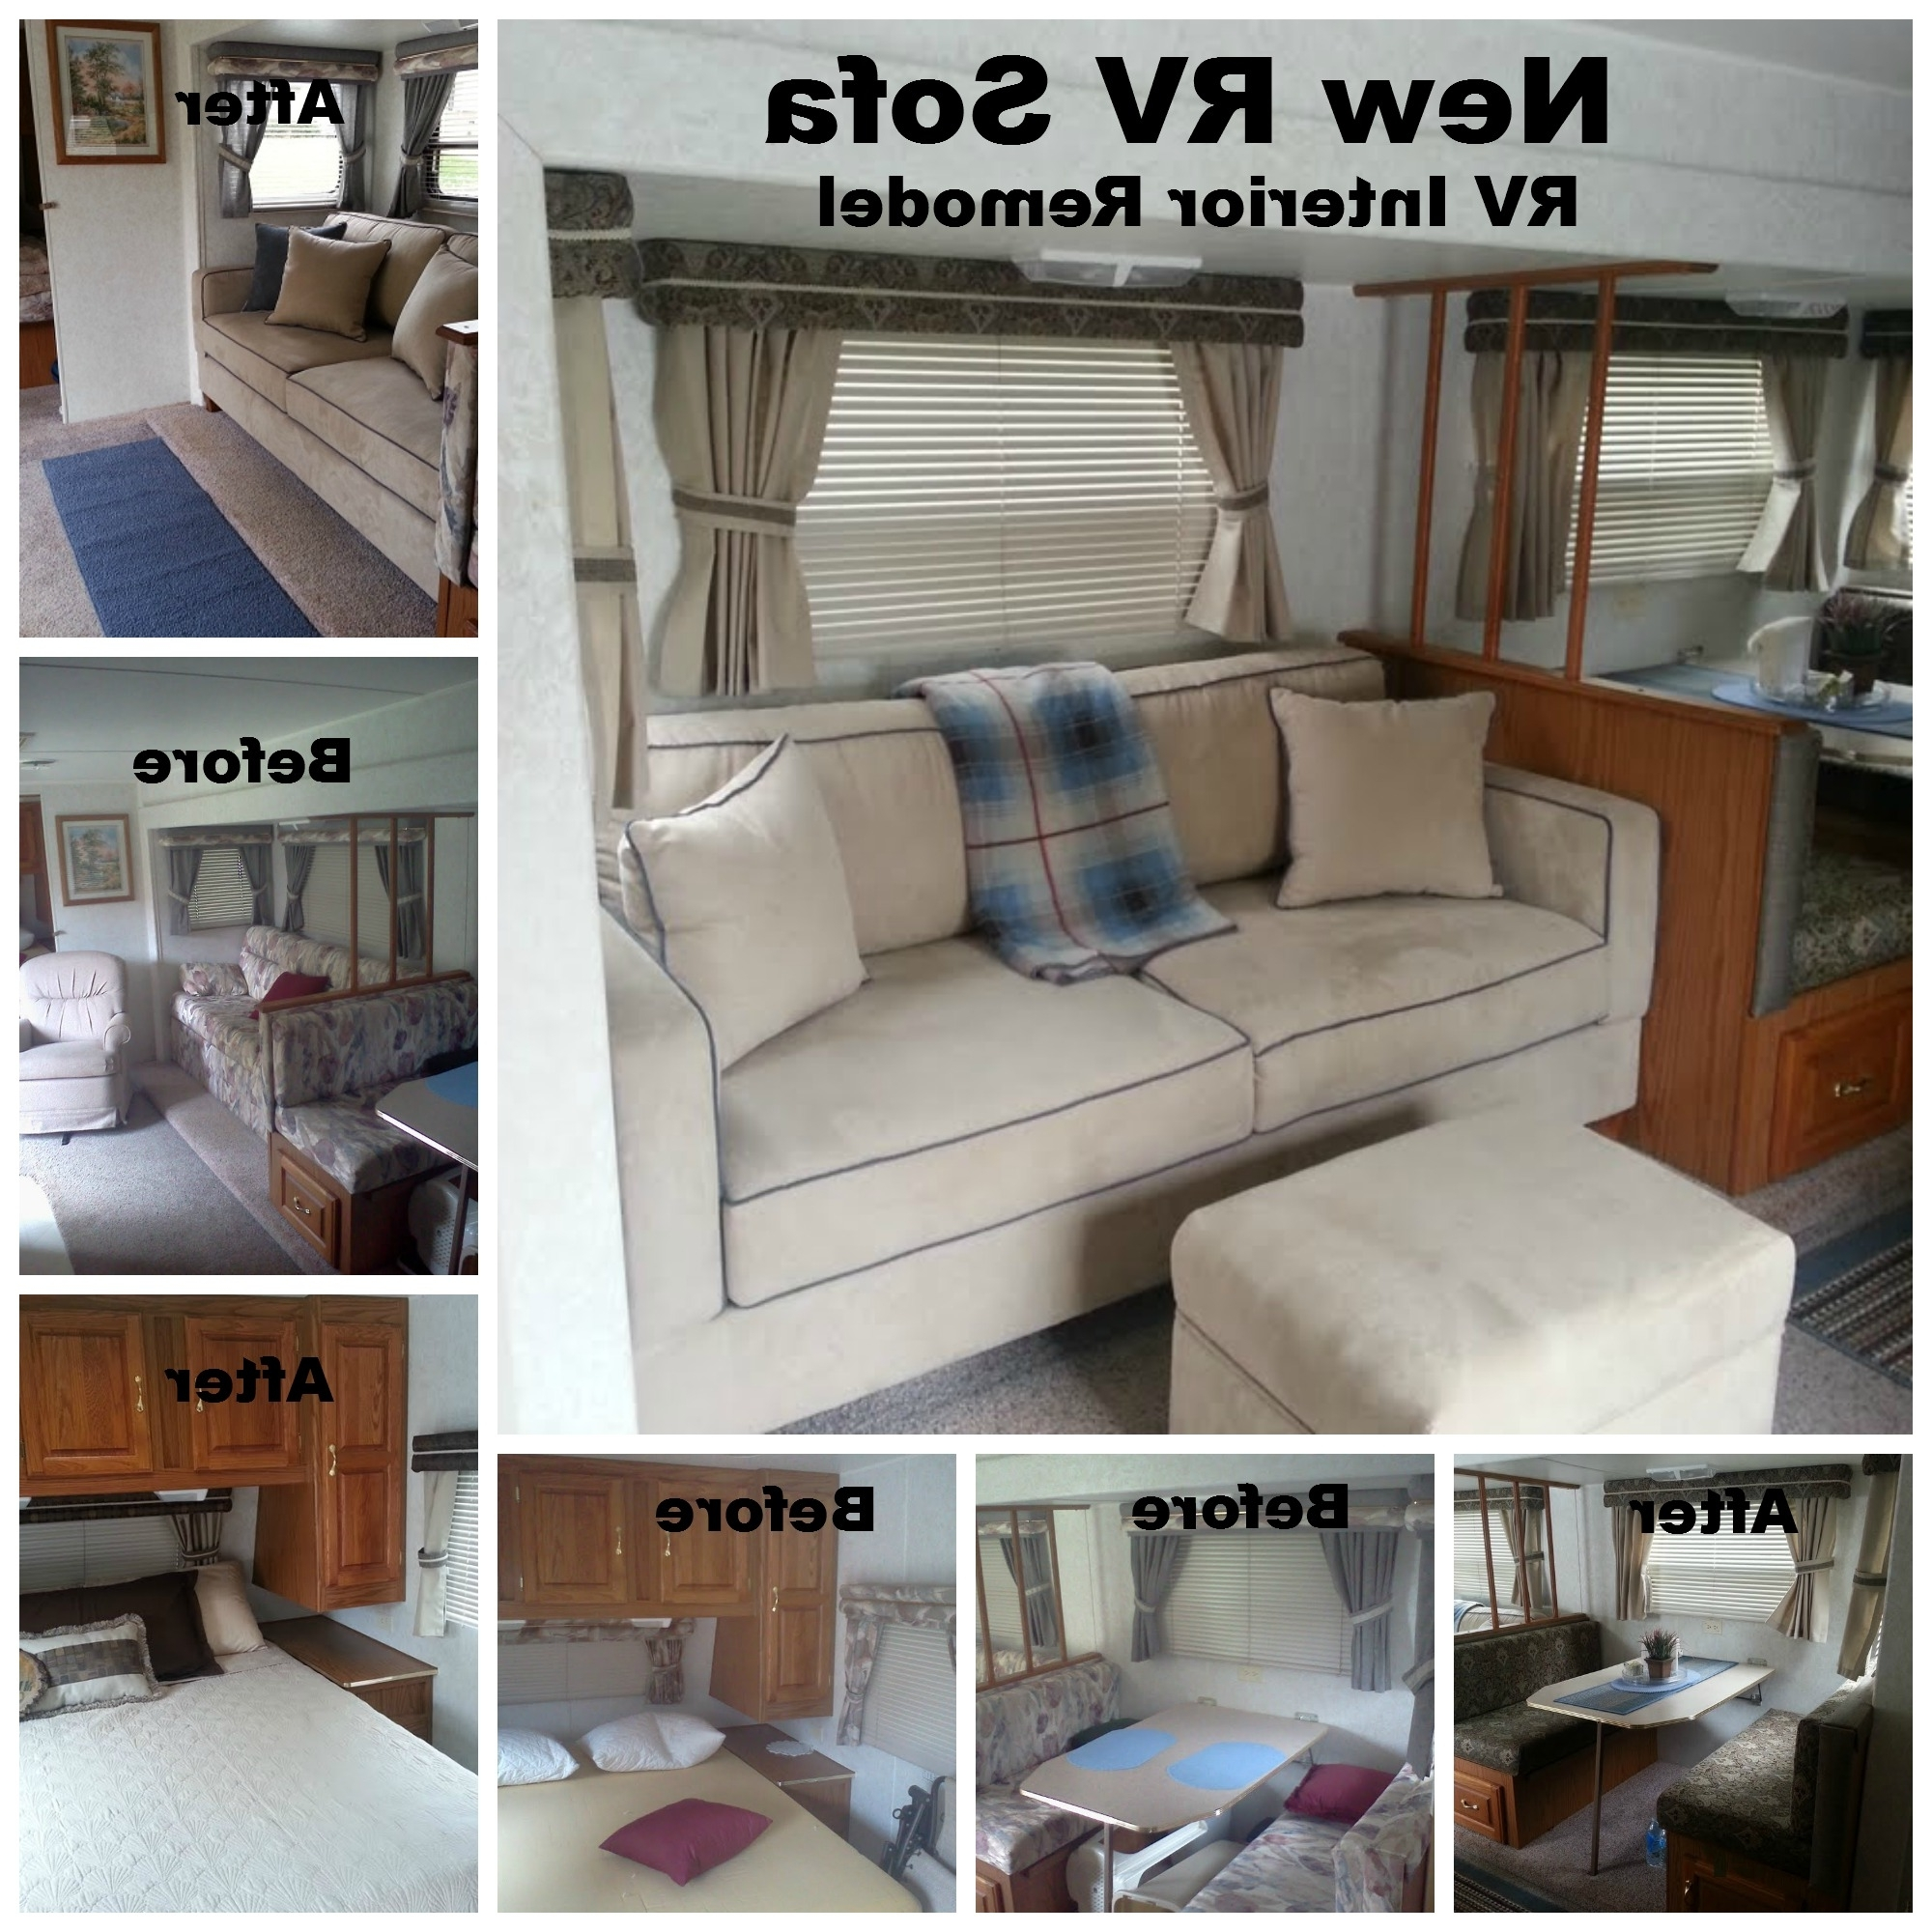 "Recent Sectional Sofas For Campers For My Rv (1999 Jayco) Remodel With My New Sofa 72"" X 34"" Sofa Fit (View 6 of 20)"